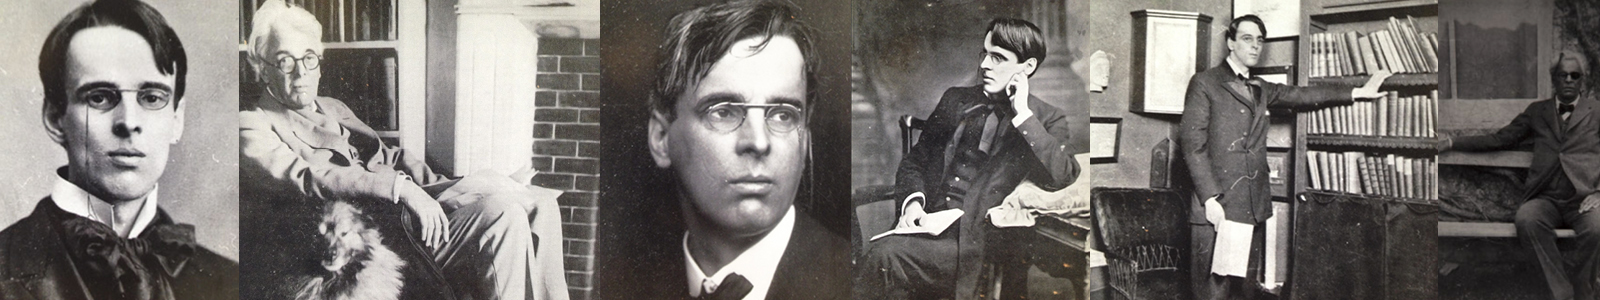 Images of WB Yeats